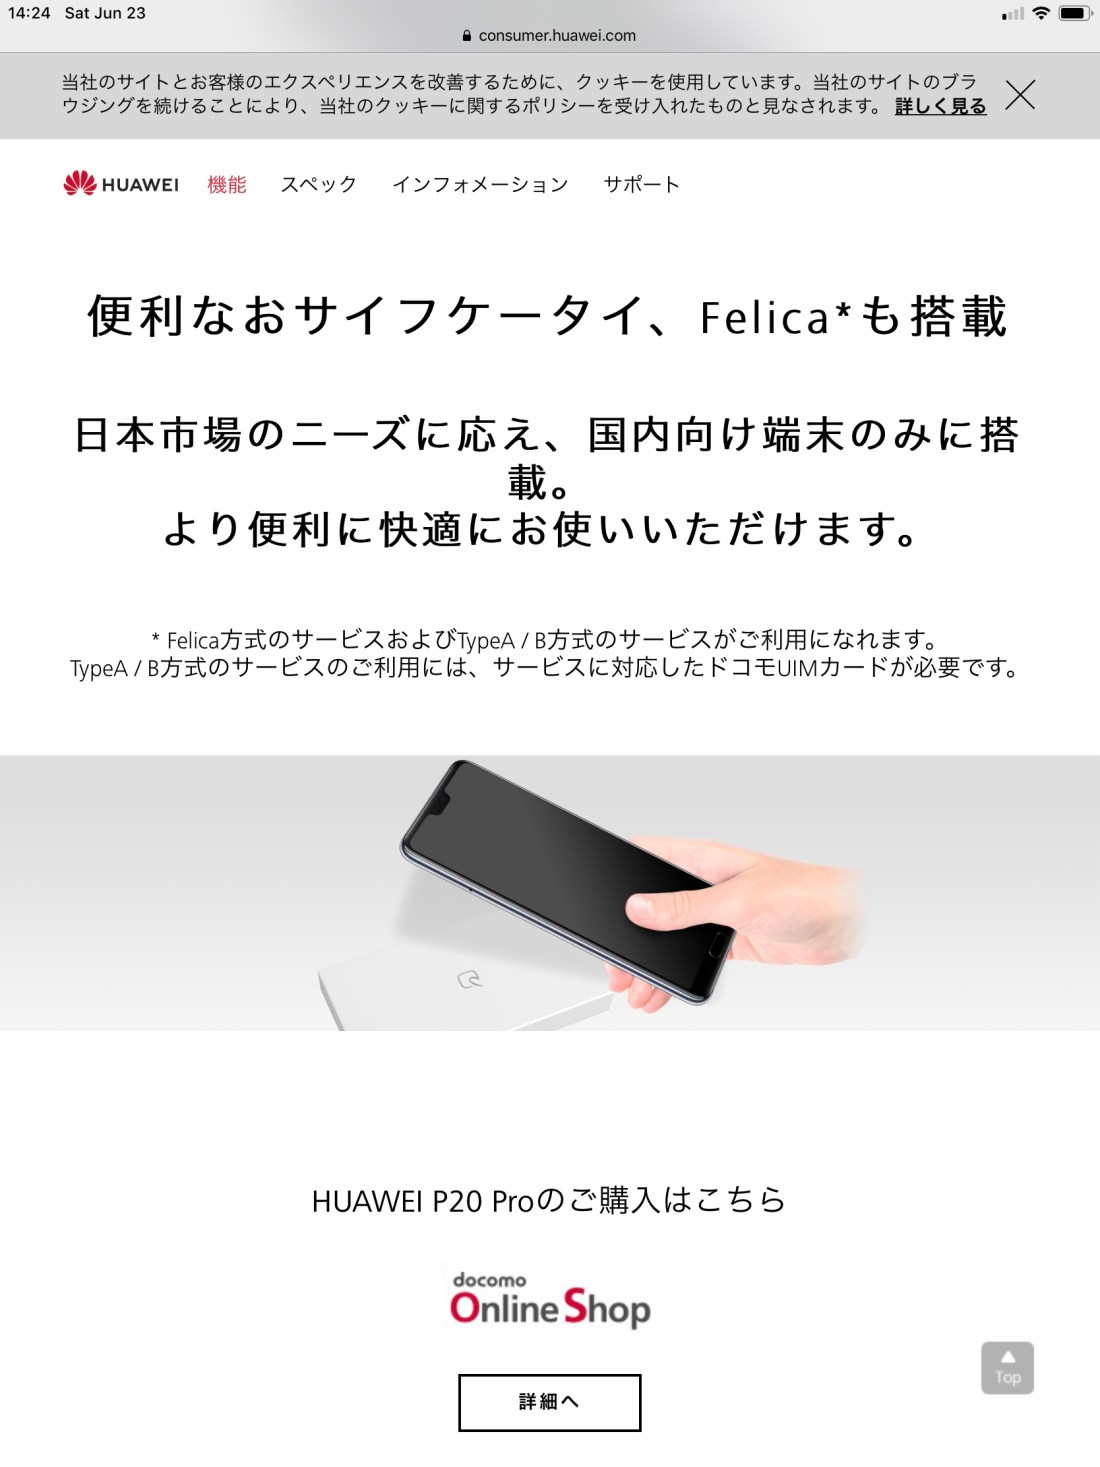 HUAWEI P20 Pro FeliCa only works on the Docomo carrier locked version